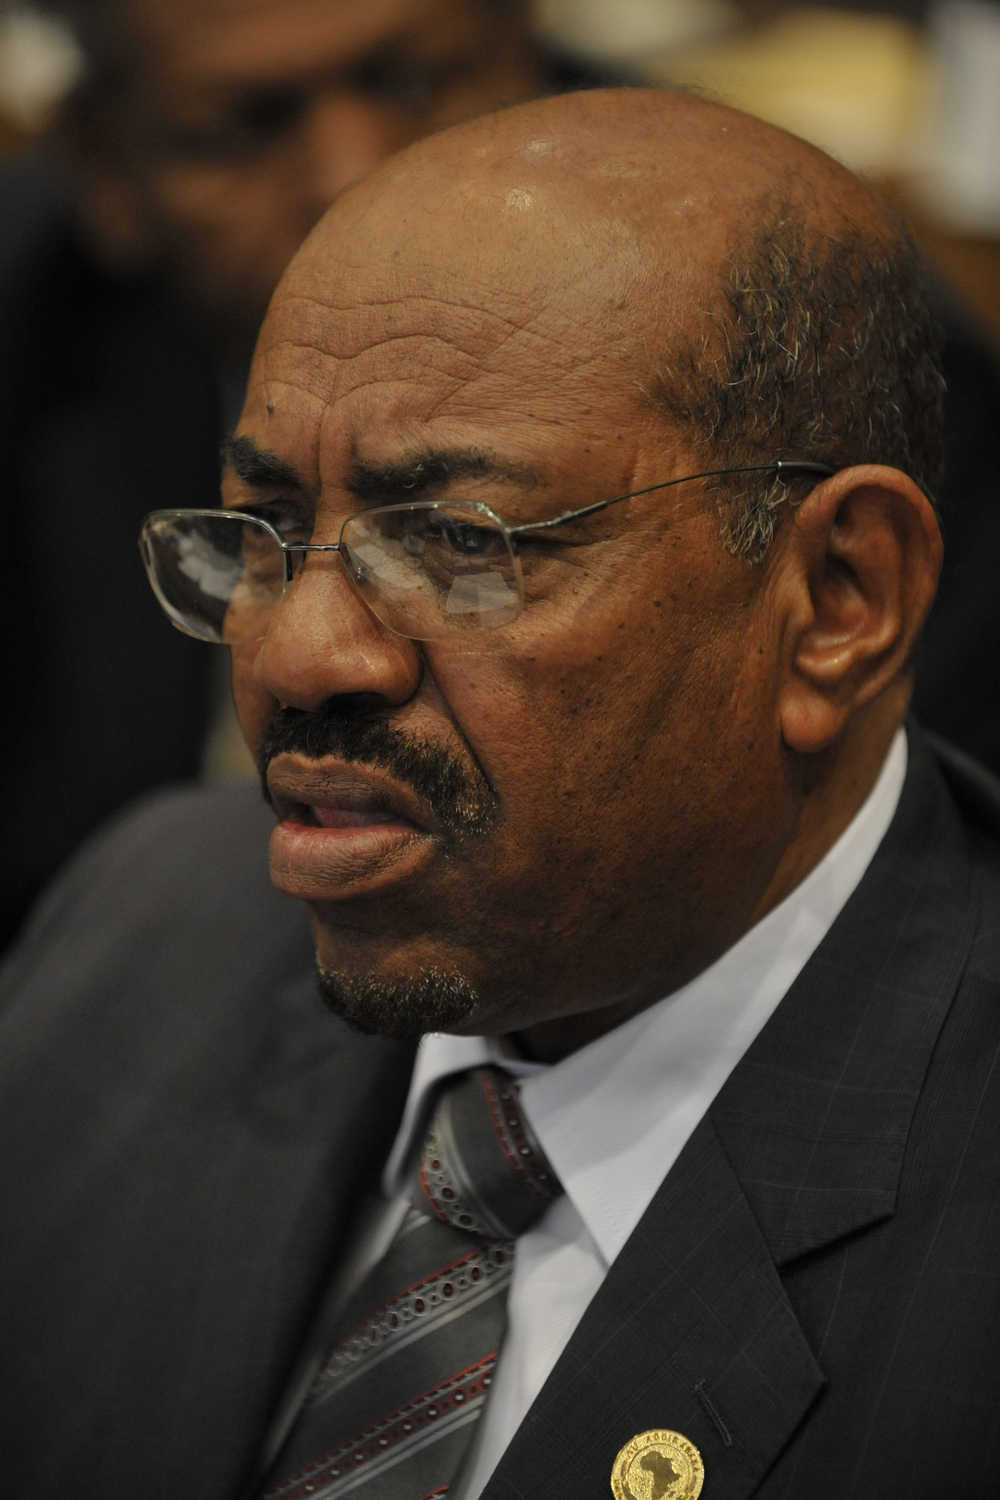 Sudanese President Omar al-Bashir. Credit: U.S. Navy photo by Mass Communication Specialist 2nd Class Jesse B. Awalt via Wikimedia Commons.